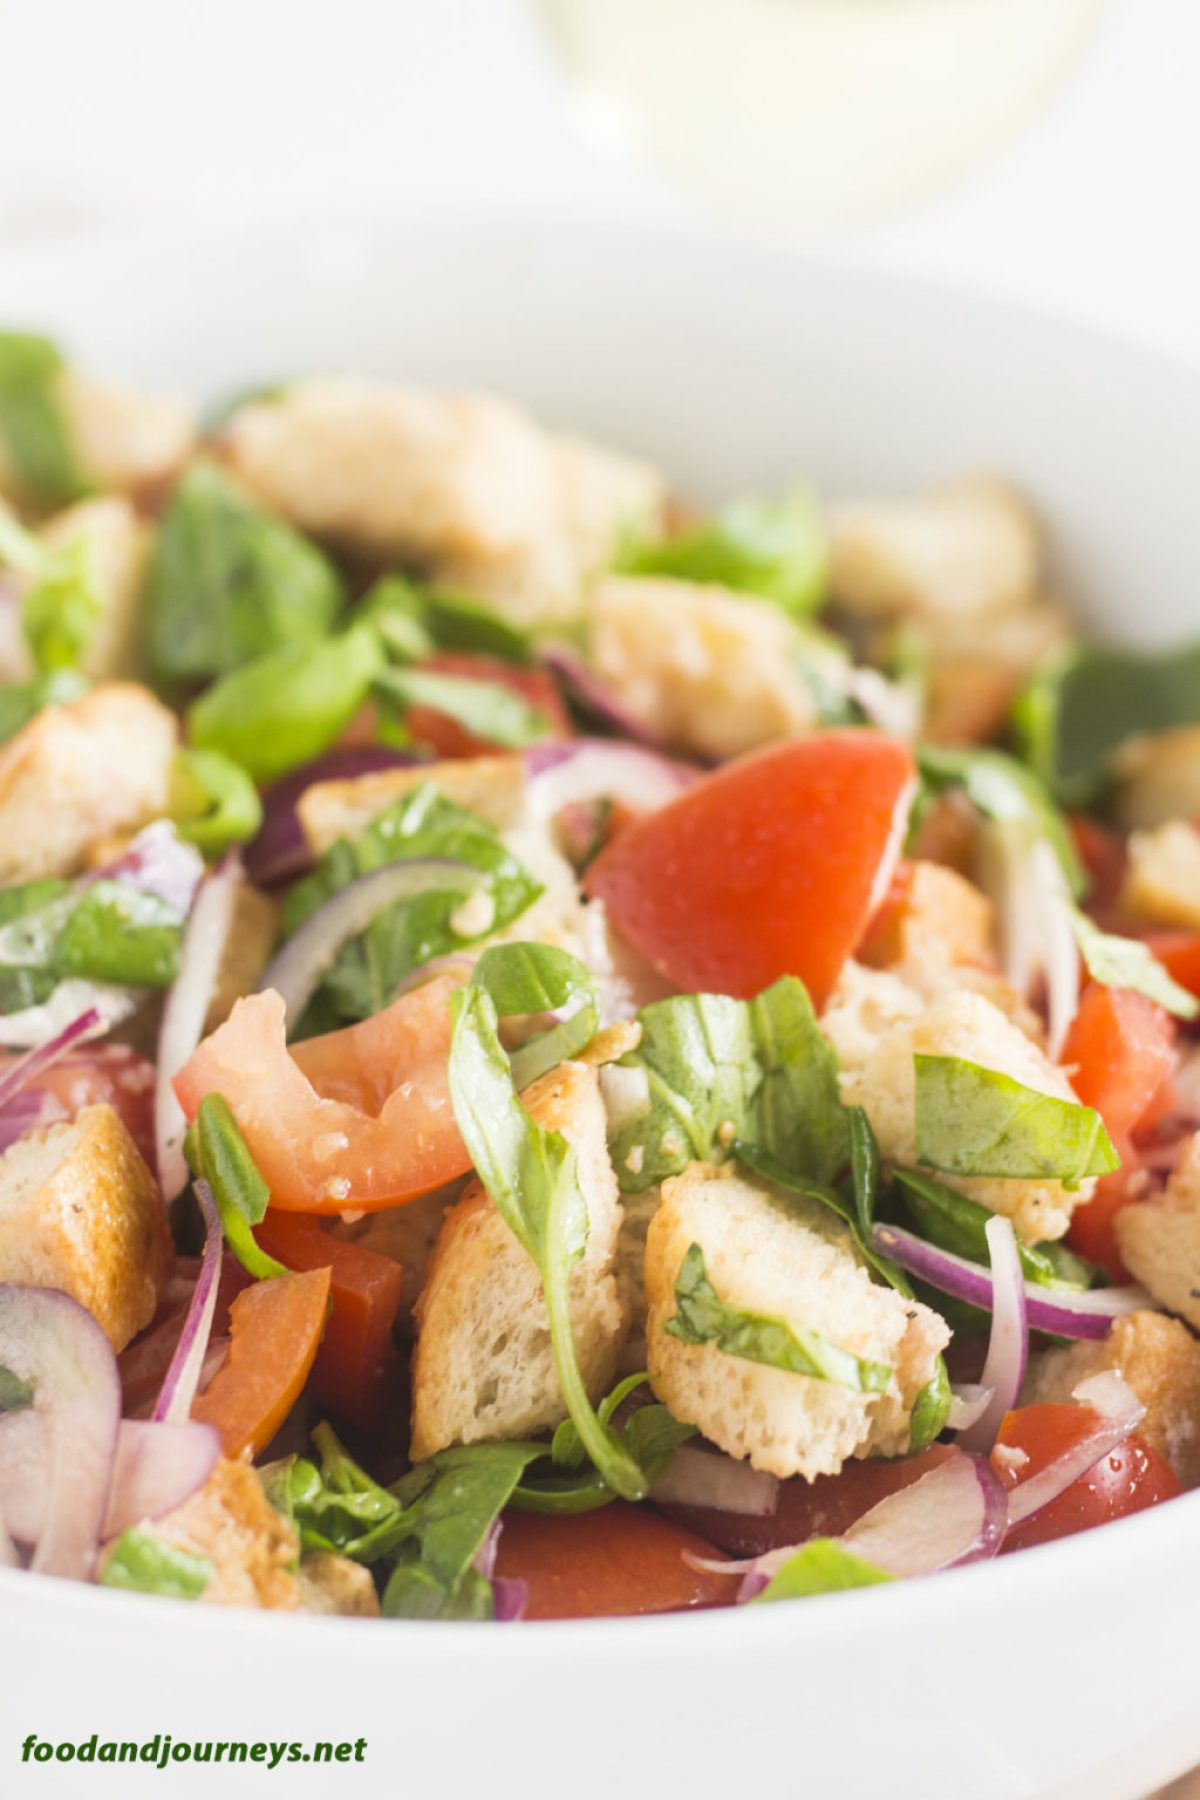 Panzanella (Bread and Tomato Salad) pic1|foodandjourneys.net